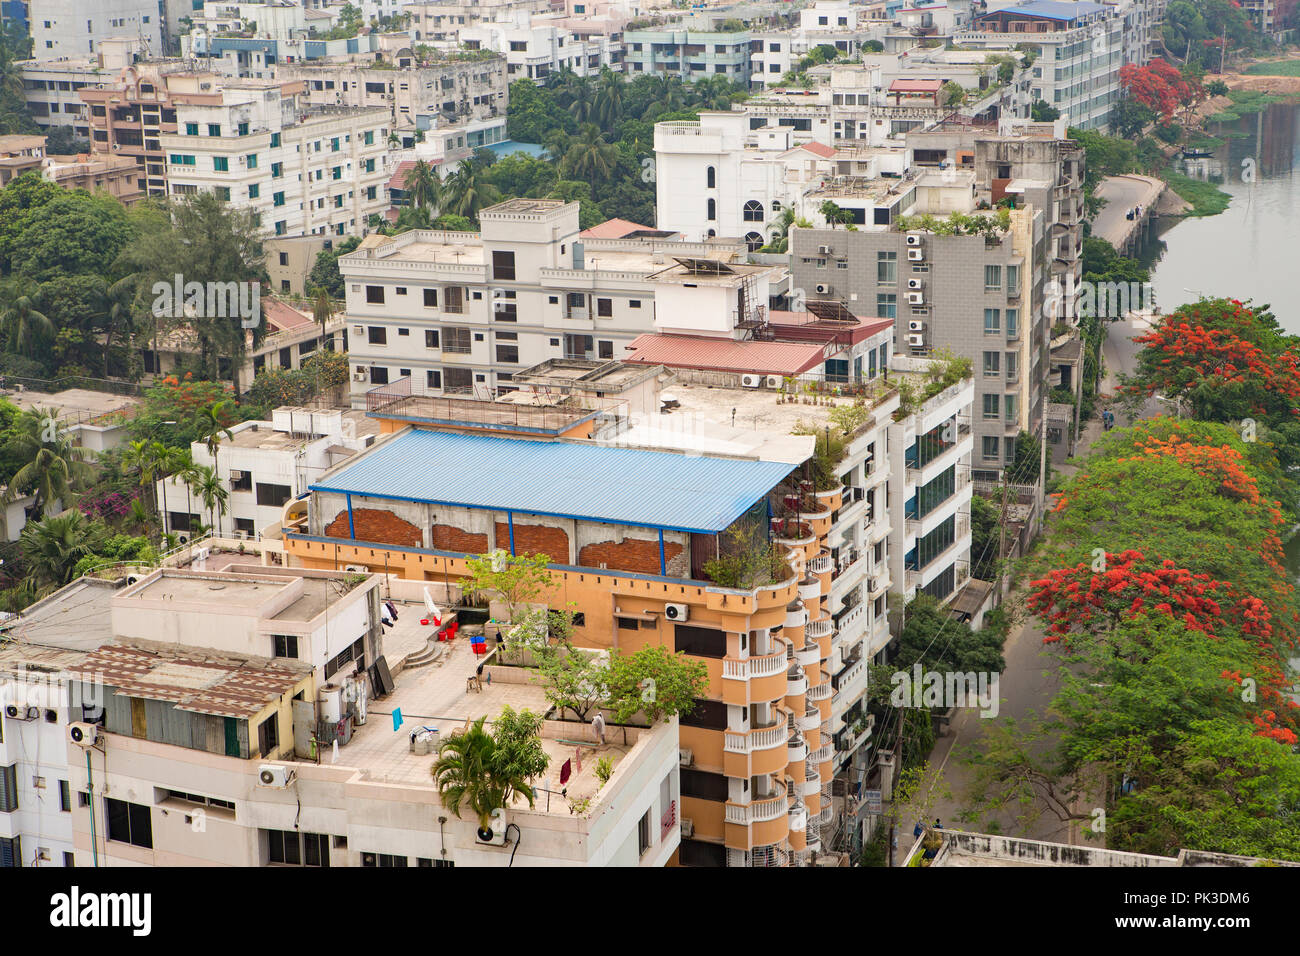 A view looking down on roof gardens and blocks of houses and flats in Dhaka, Bangladesh. - Stock Image